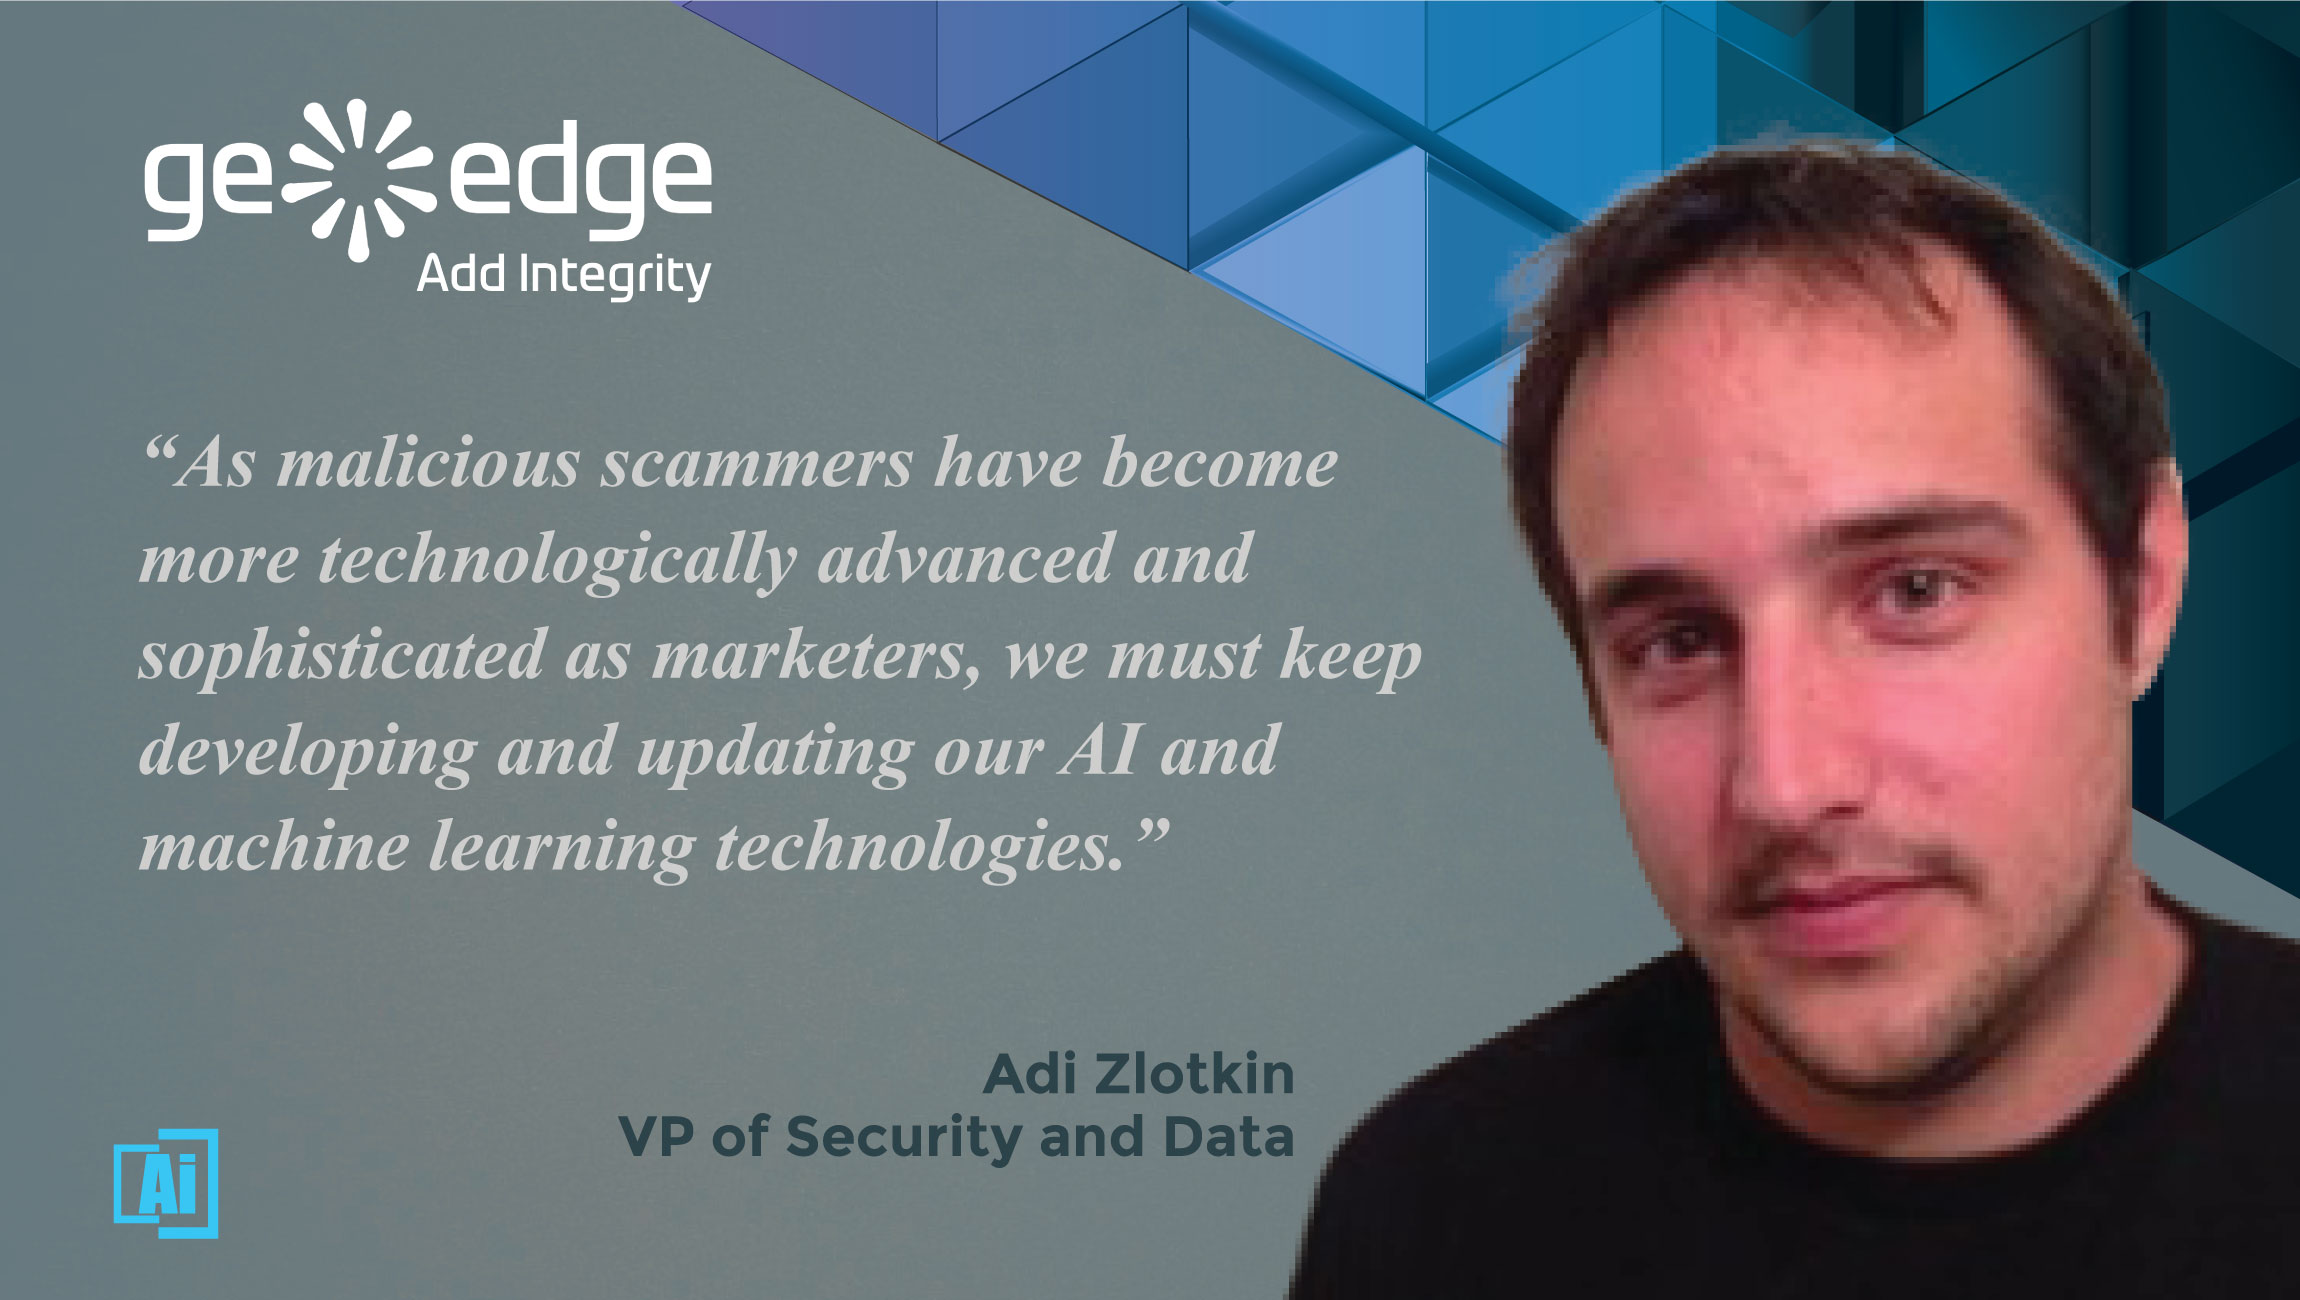 AiThority.com Interview with Adi Zlotikin, GeoEdge's VP Security and Data cue card